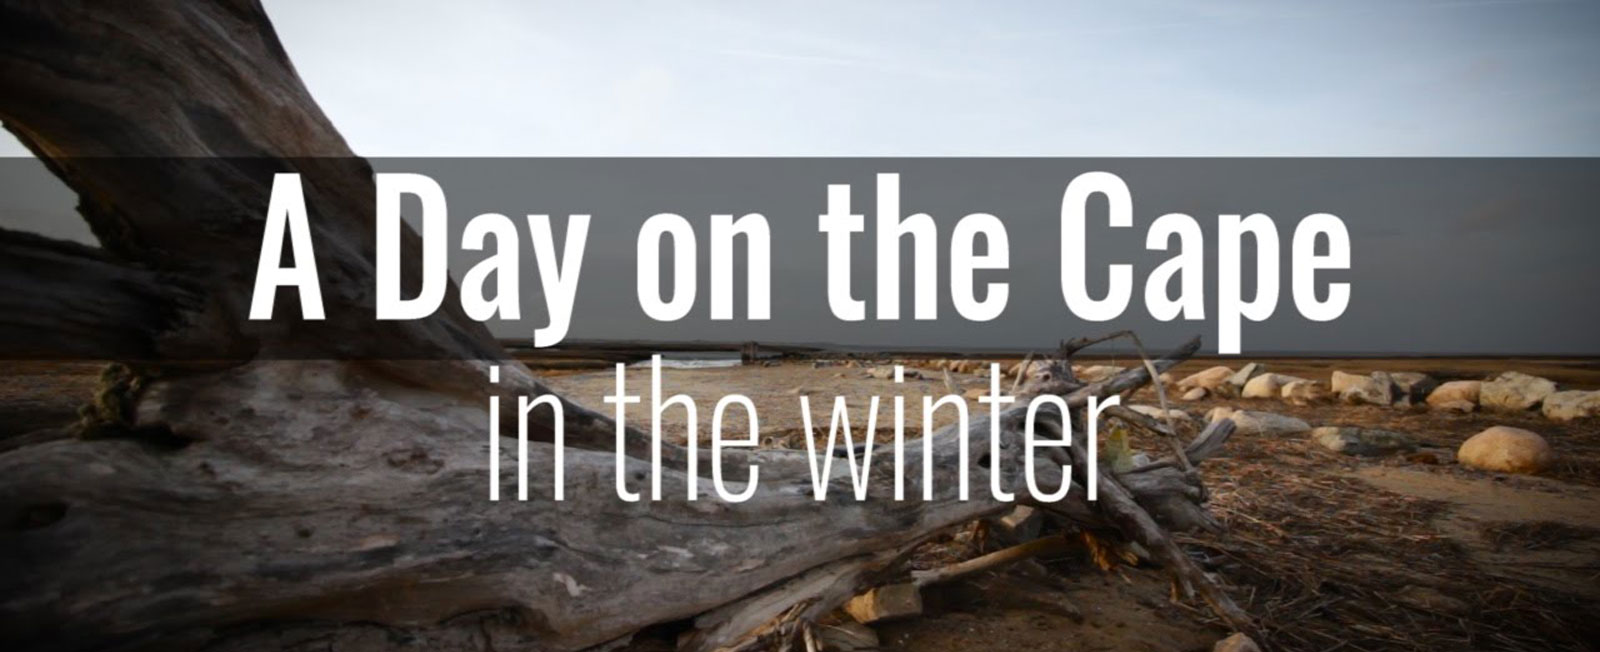 We took the camera with us everywhere we went while on the Cape one day in winter. Come along for the ride!